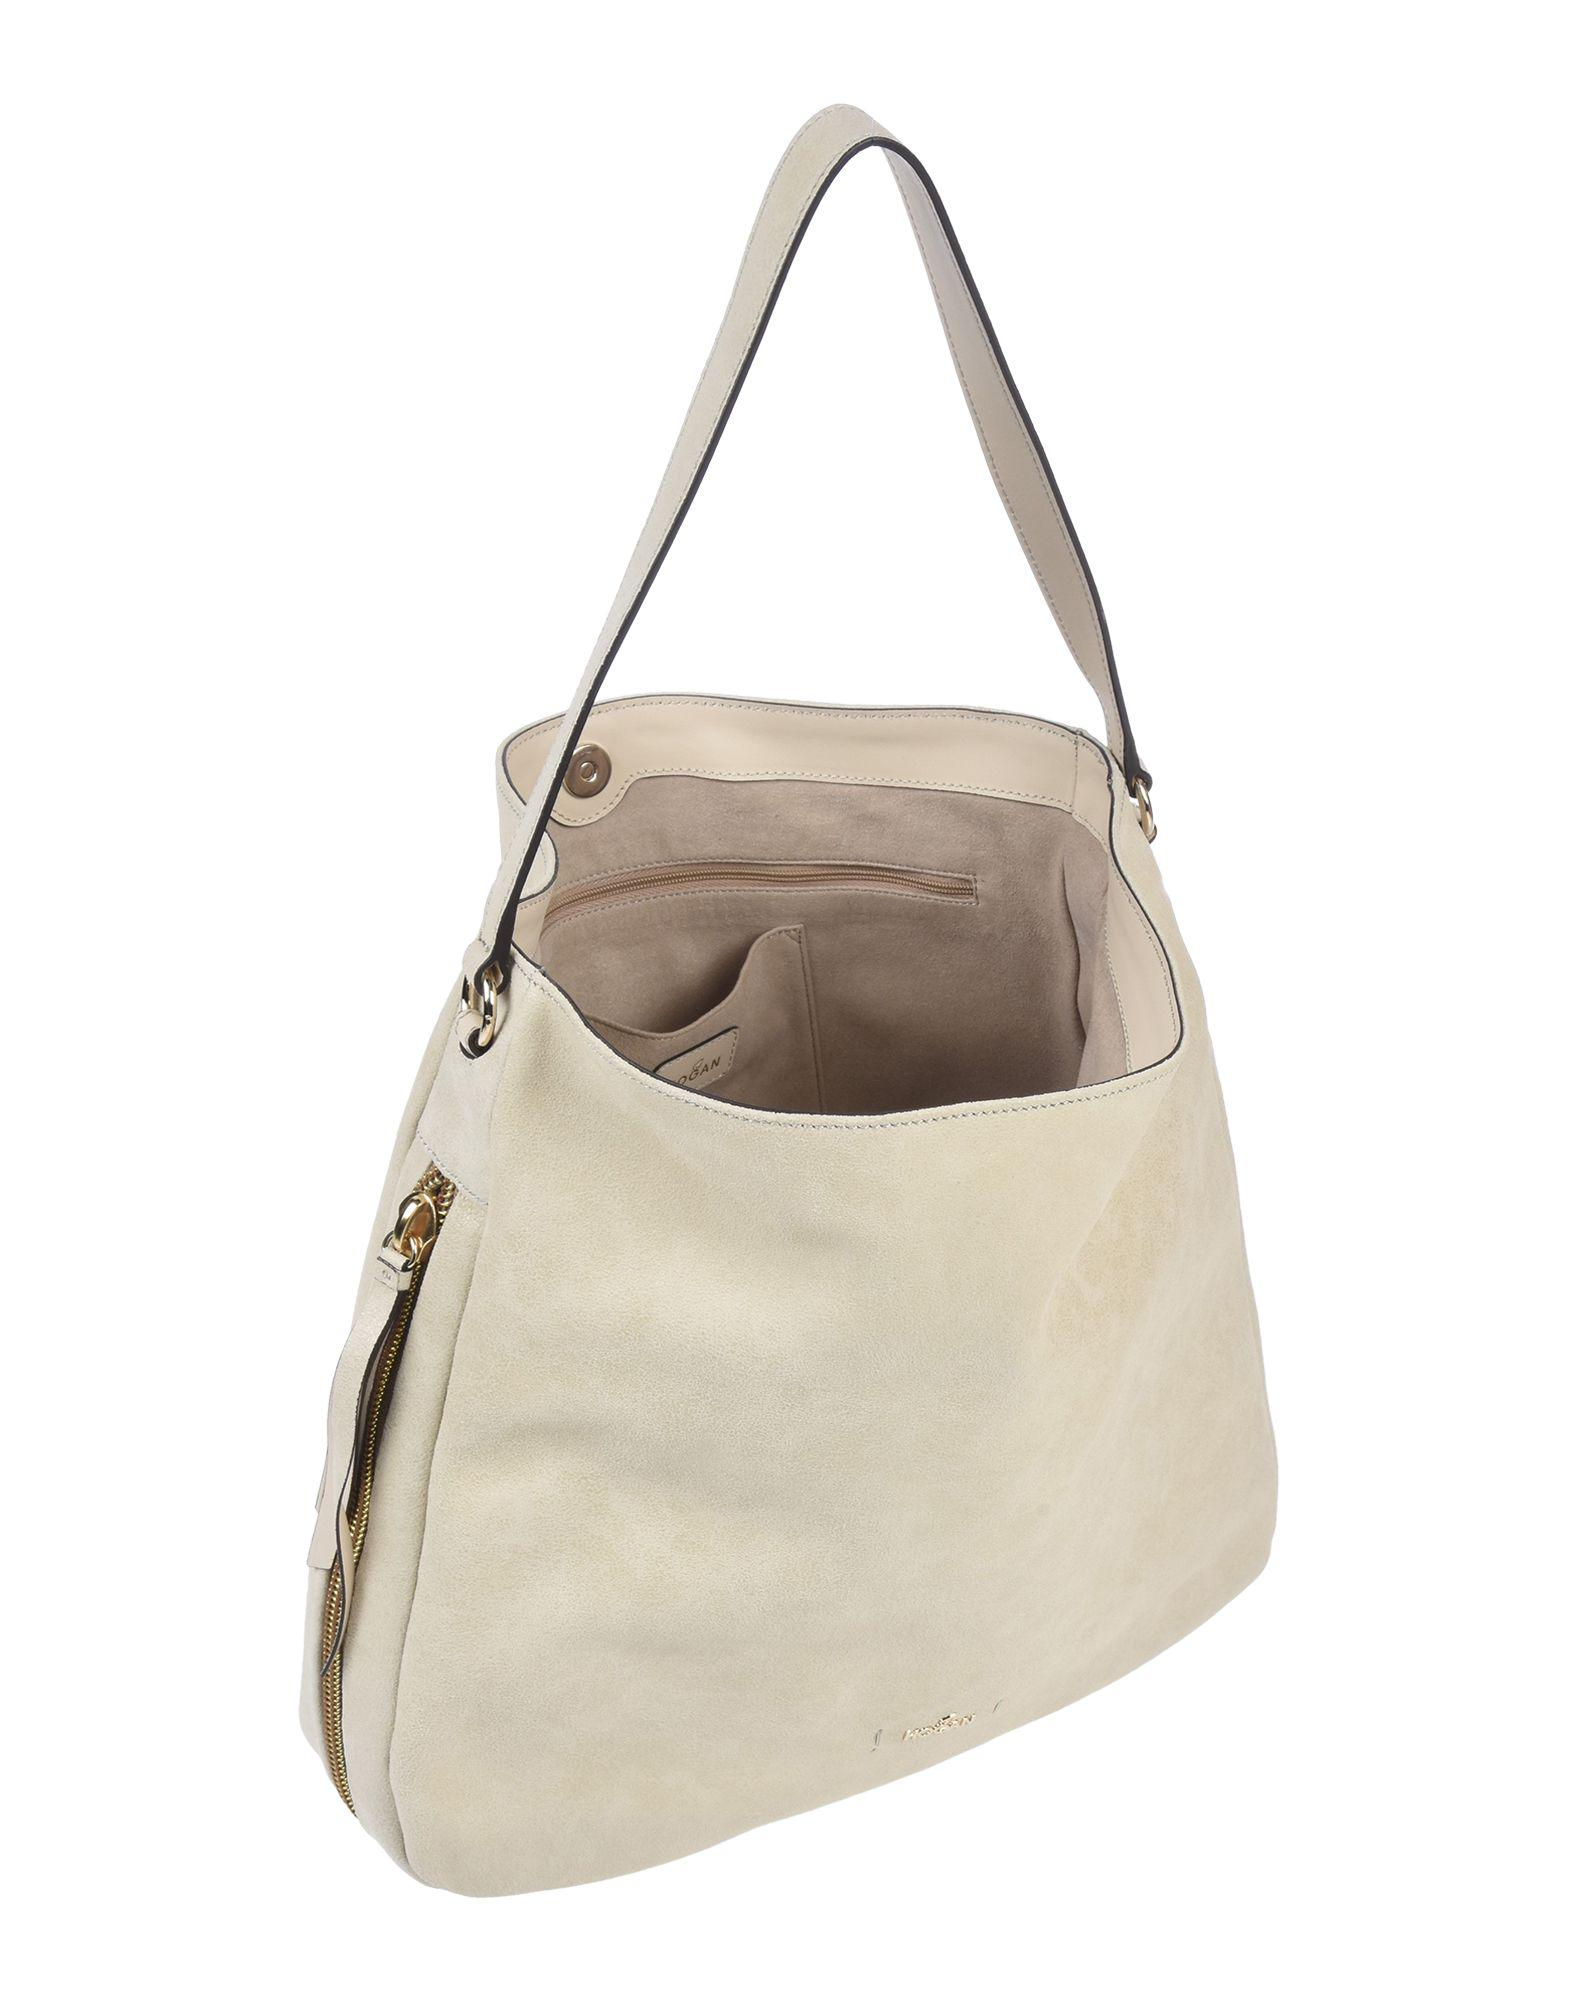 Hogan Handbag in Natural - Lyst 9861e84856883